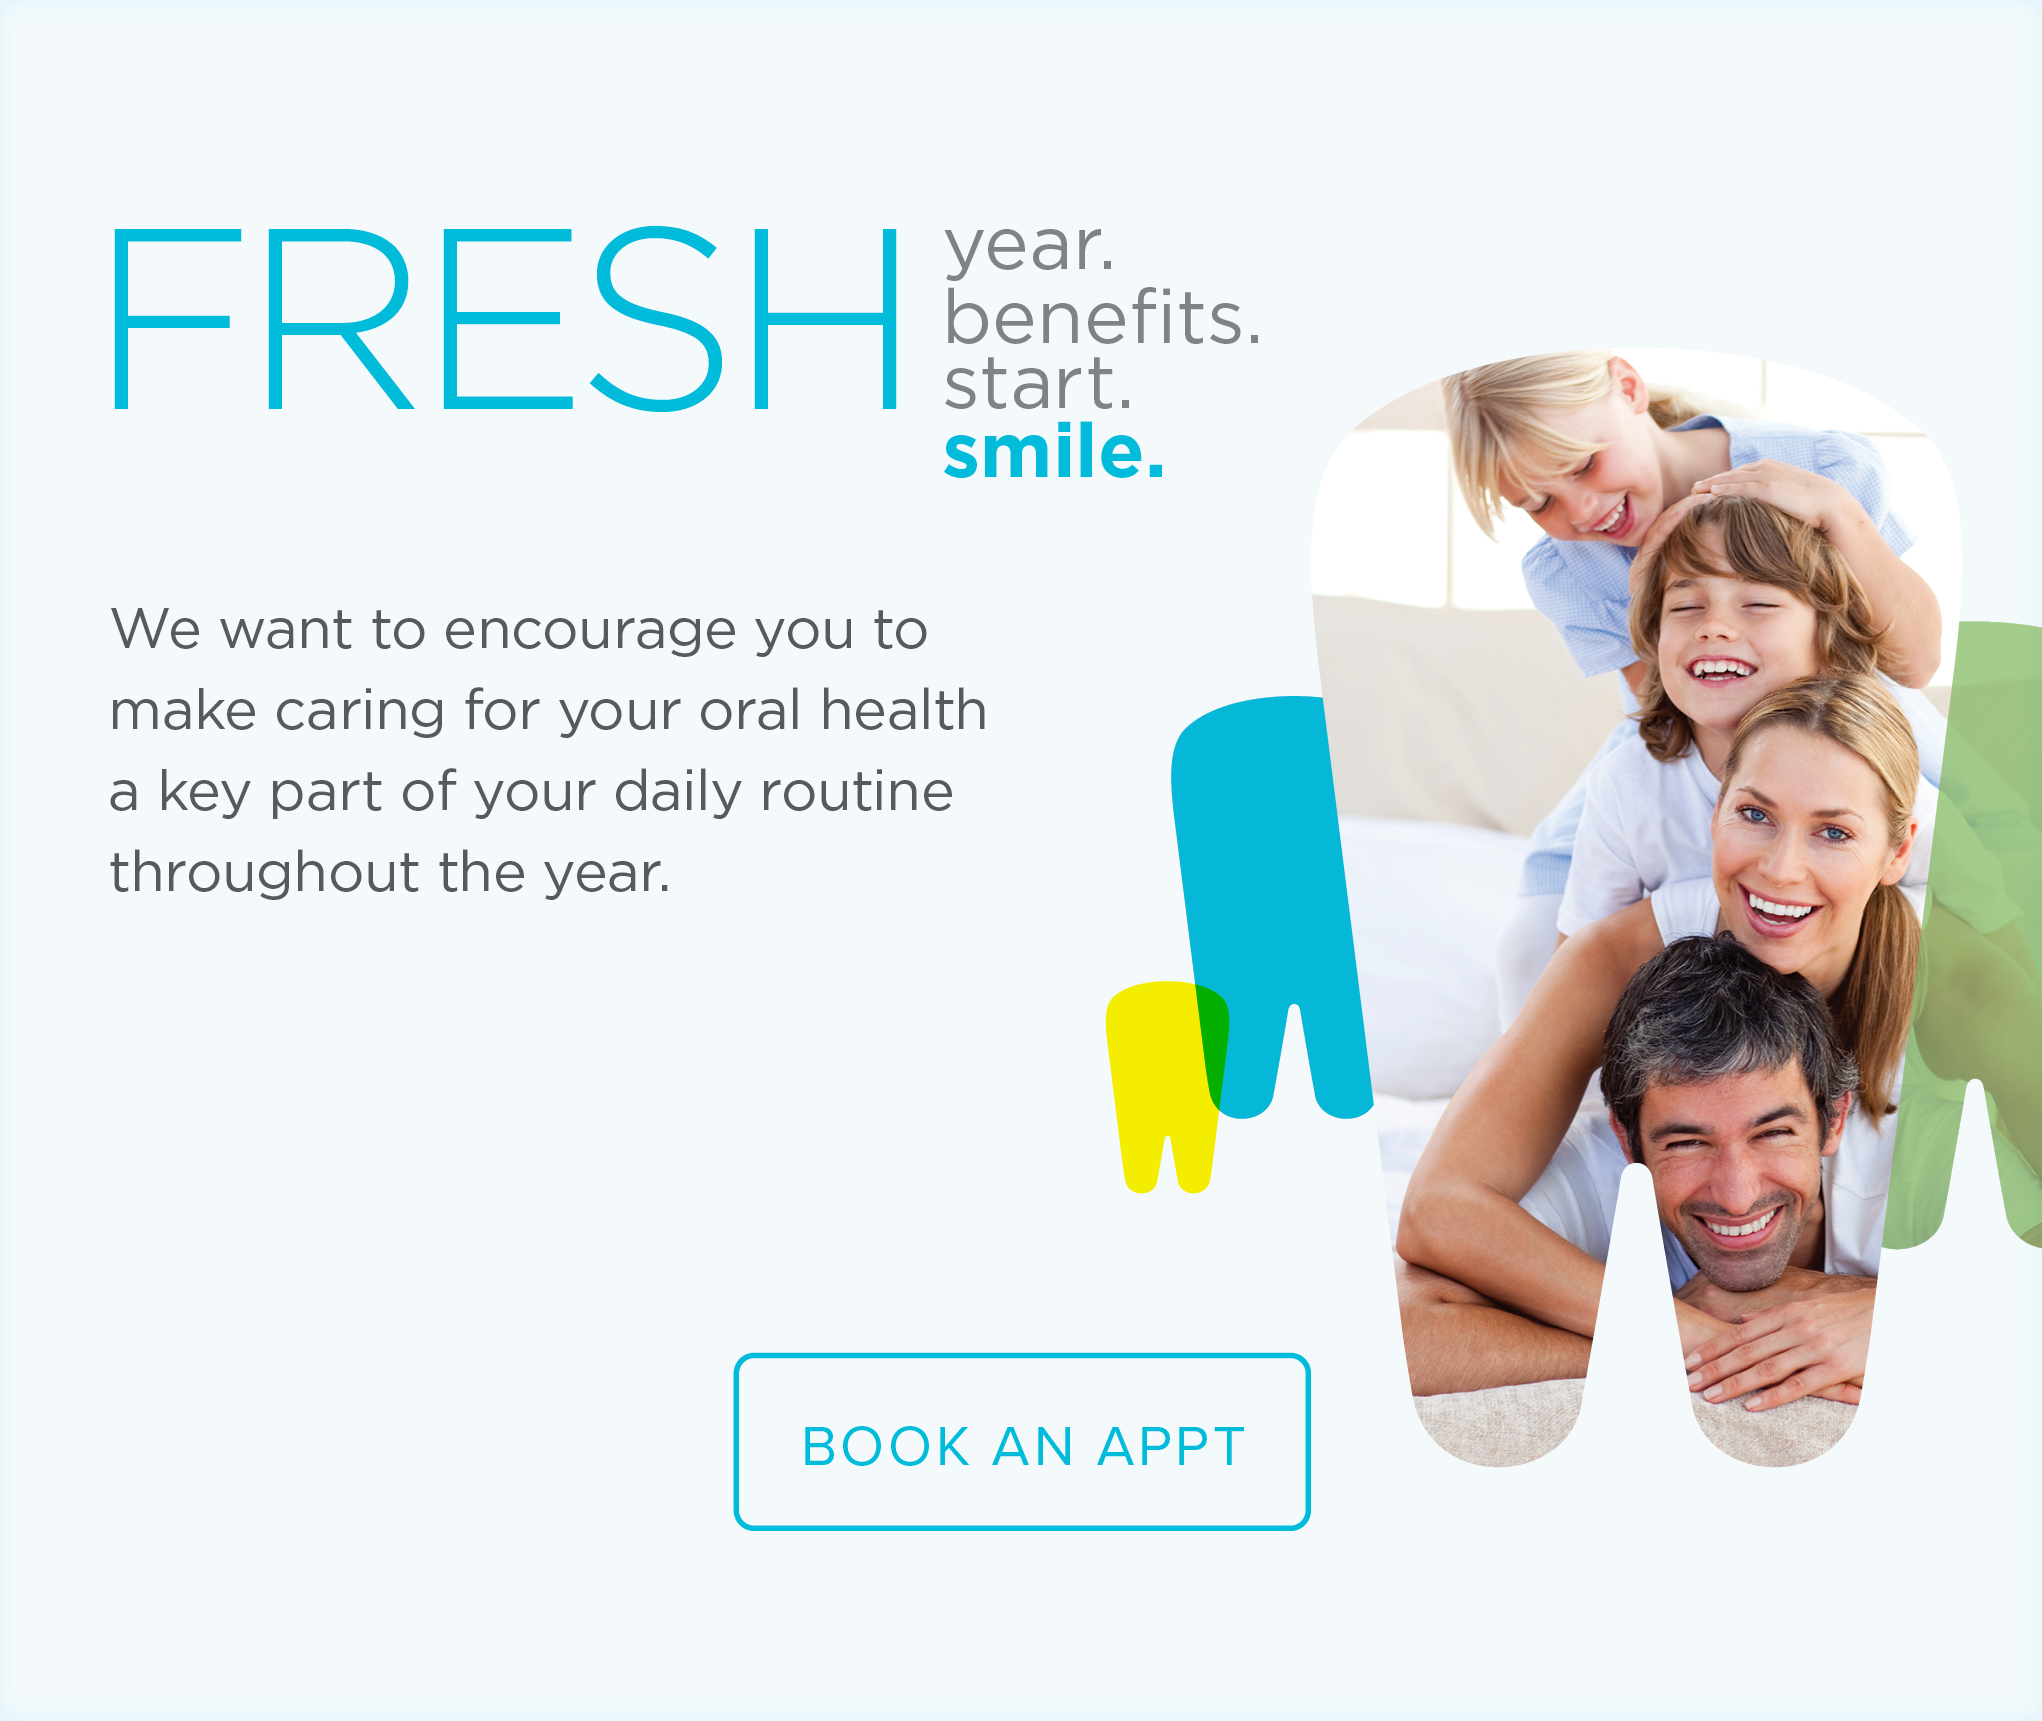 Canyon Lakes Dental Group and Orthodontics - Make the Most of Your Benefits